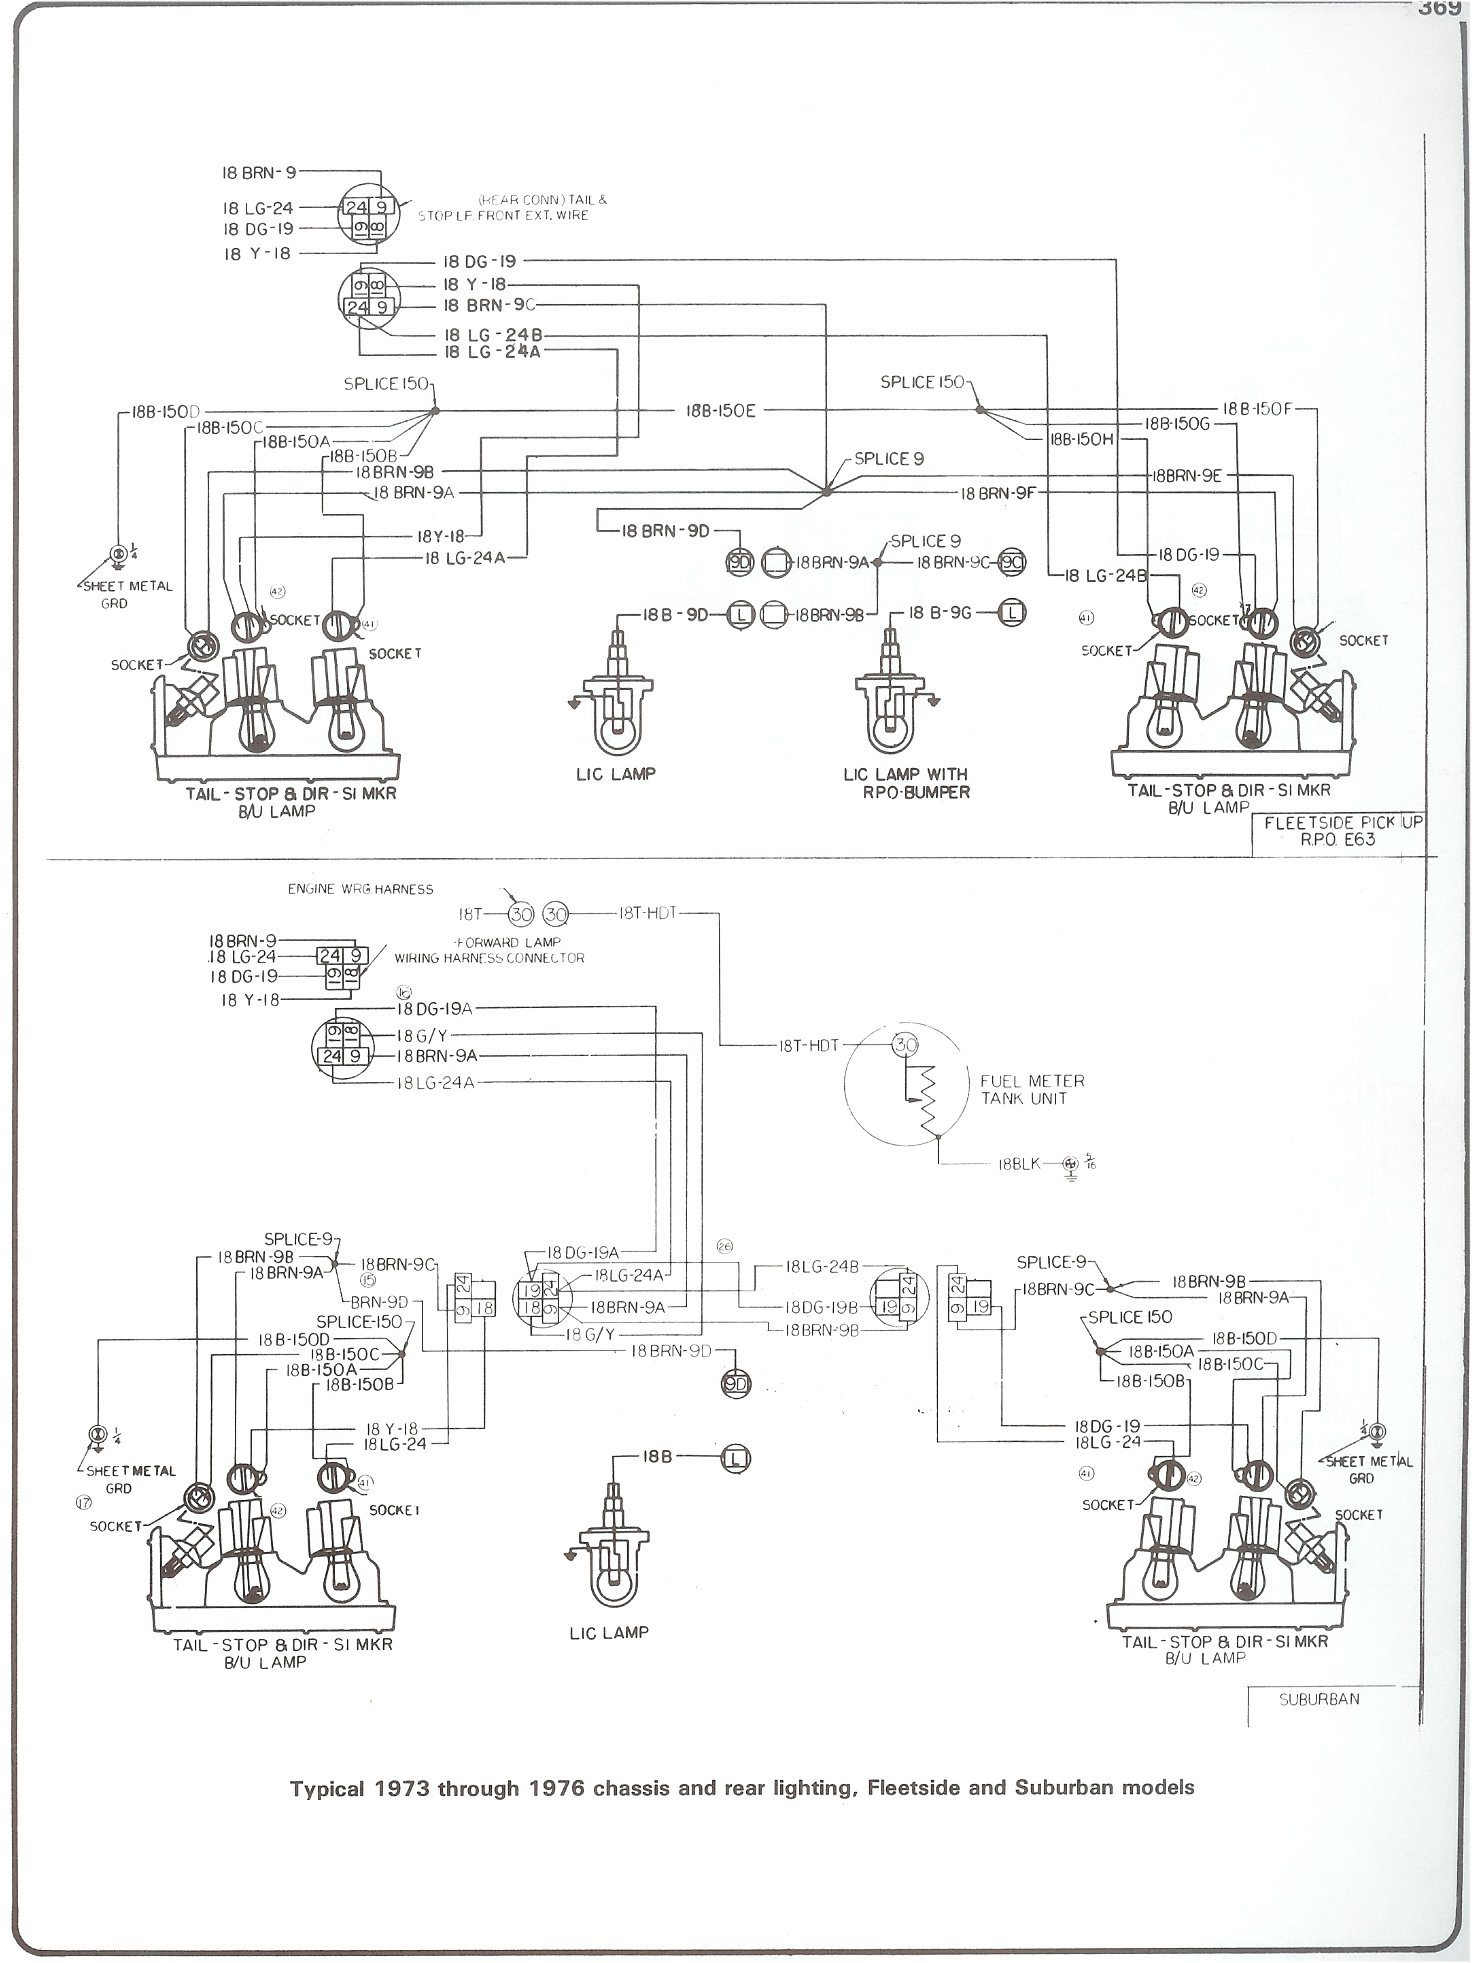 73 76_chass_rr_light_fleet_burb complete 73 87 wiring diagrams gmc truck wiring diagrams at panicattacktreatment.co